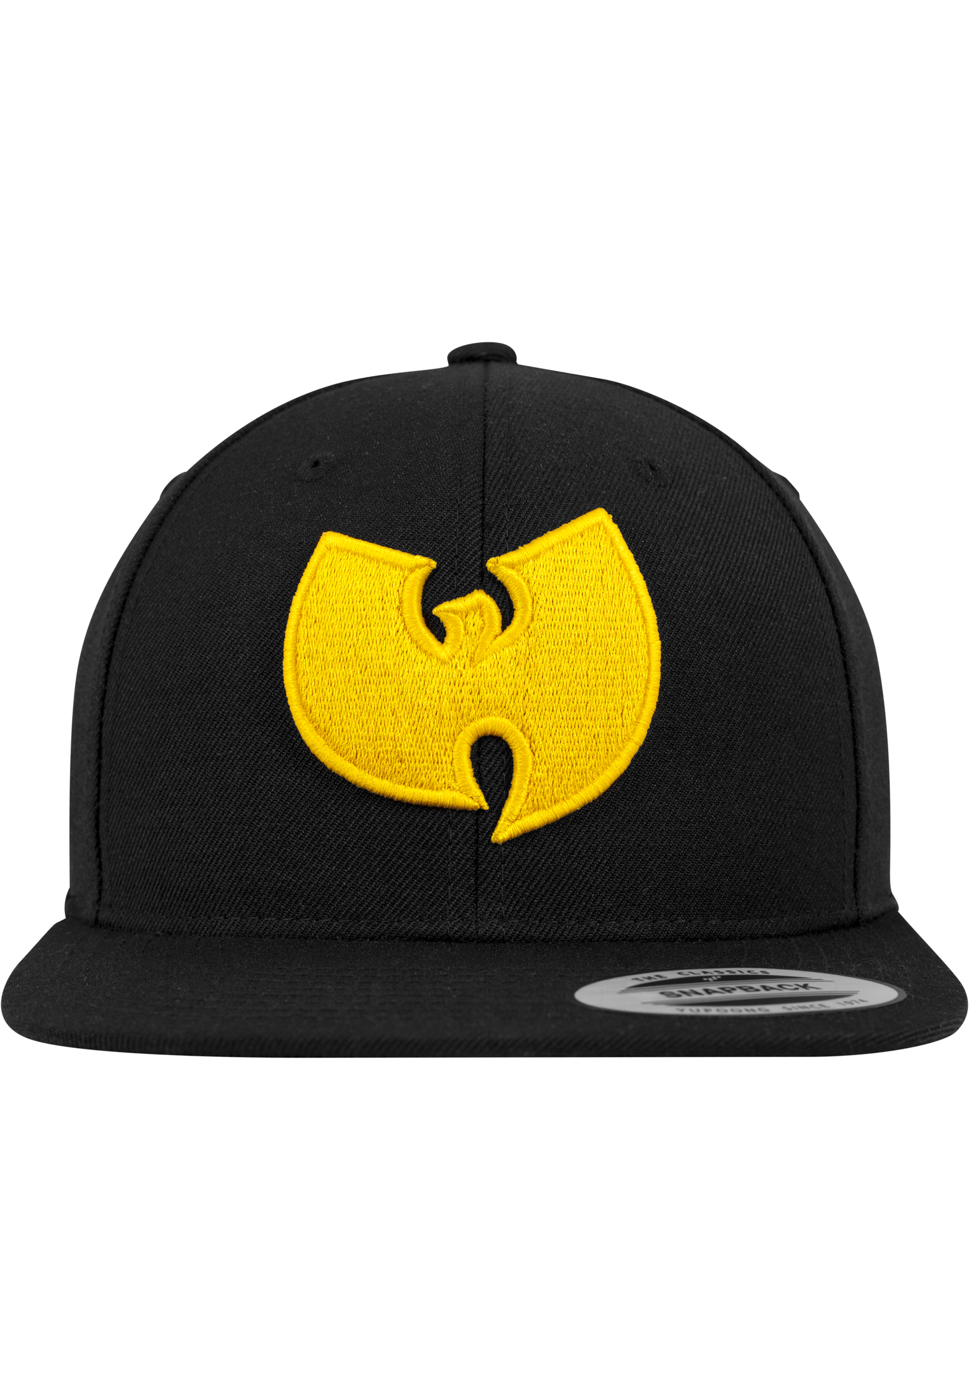 Wu-Wear Logo Snapback Cap - black/yellow